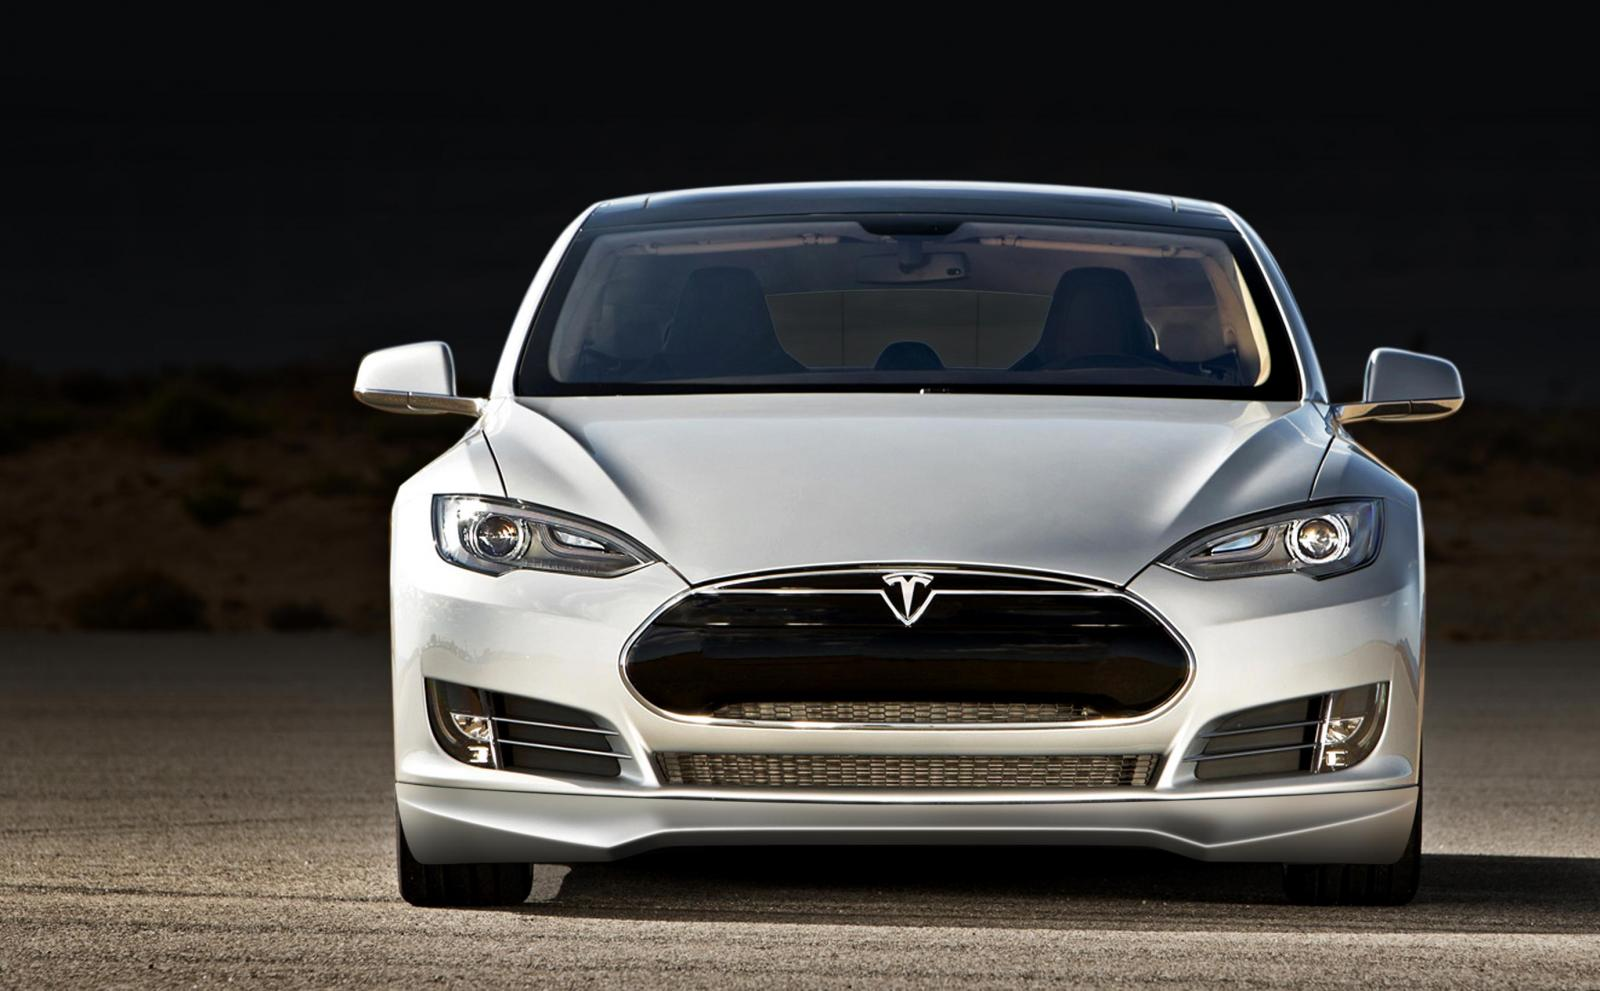 http://www.automobilesreview.com/img/unplugged-performance-tesla-model-s/unplugged-performance-tesla-model-s-04.jpg